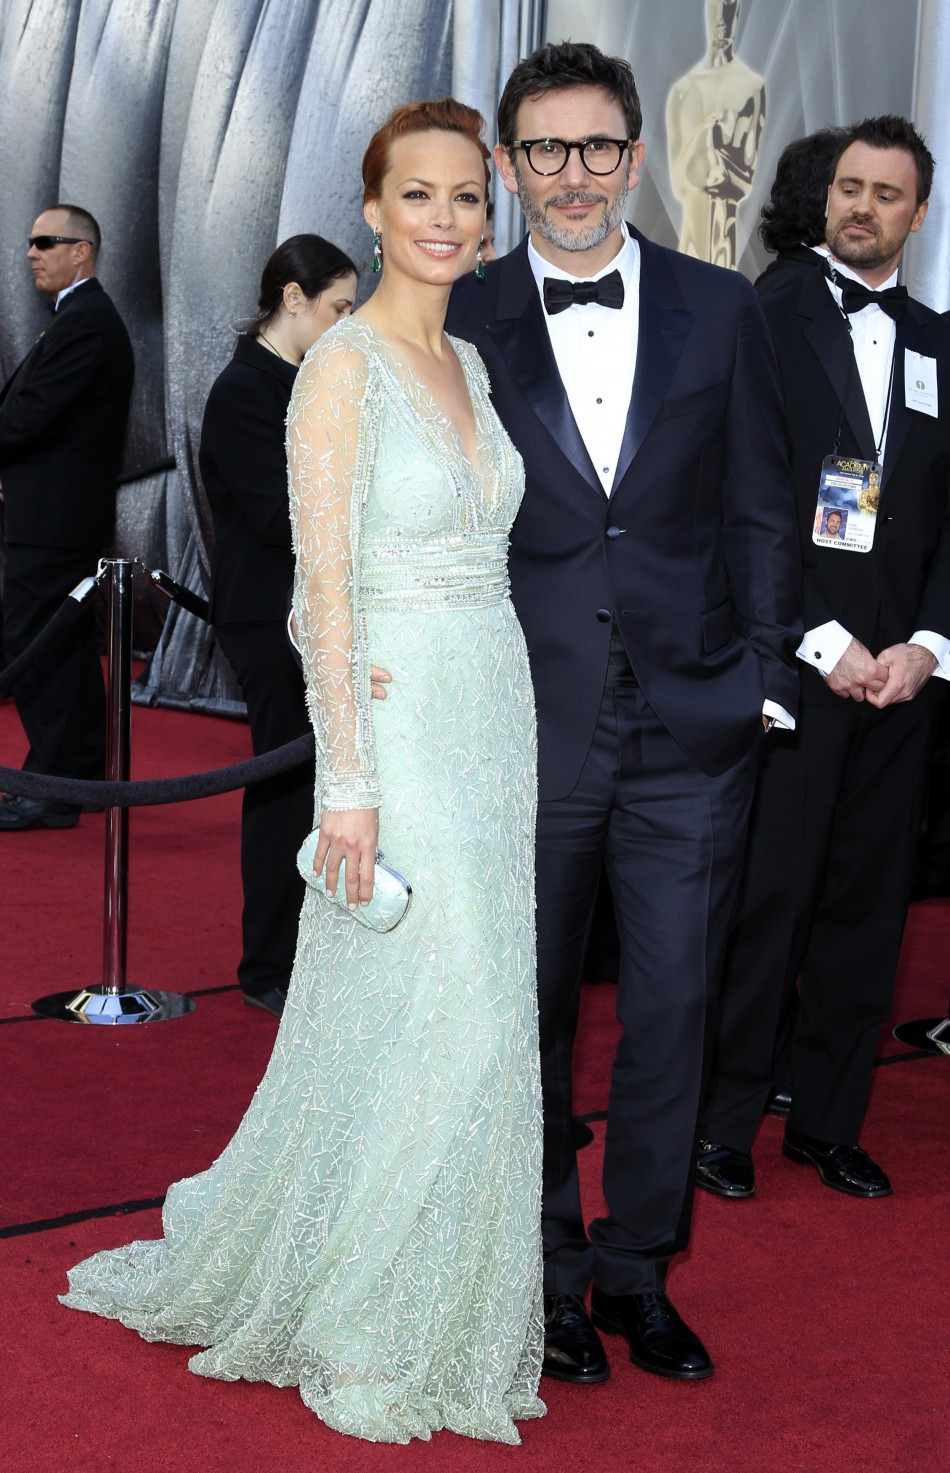 Berenice Bejo, best supporting actress nominee, and her husband French director Michel Hazanavicius, best director nominee, arrive at the 84th Academy Awards in Hollywood